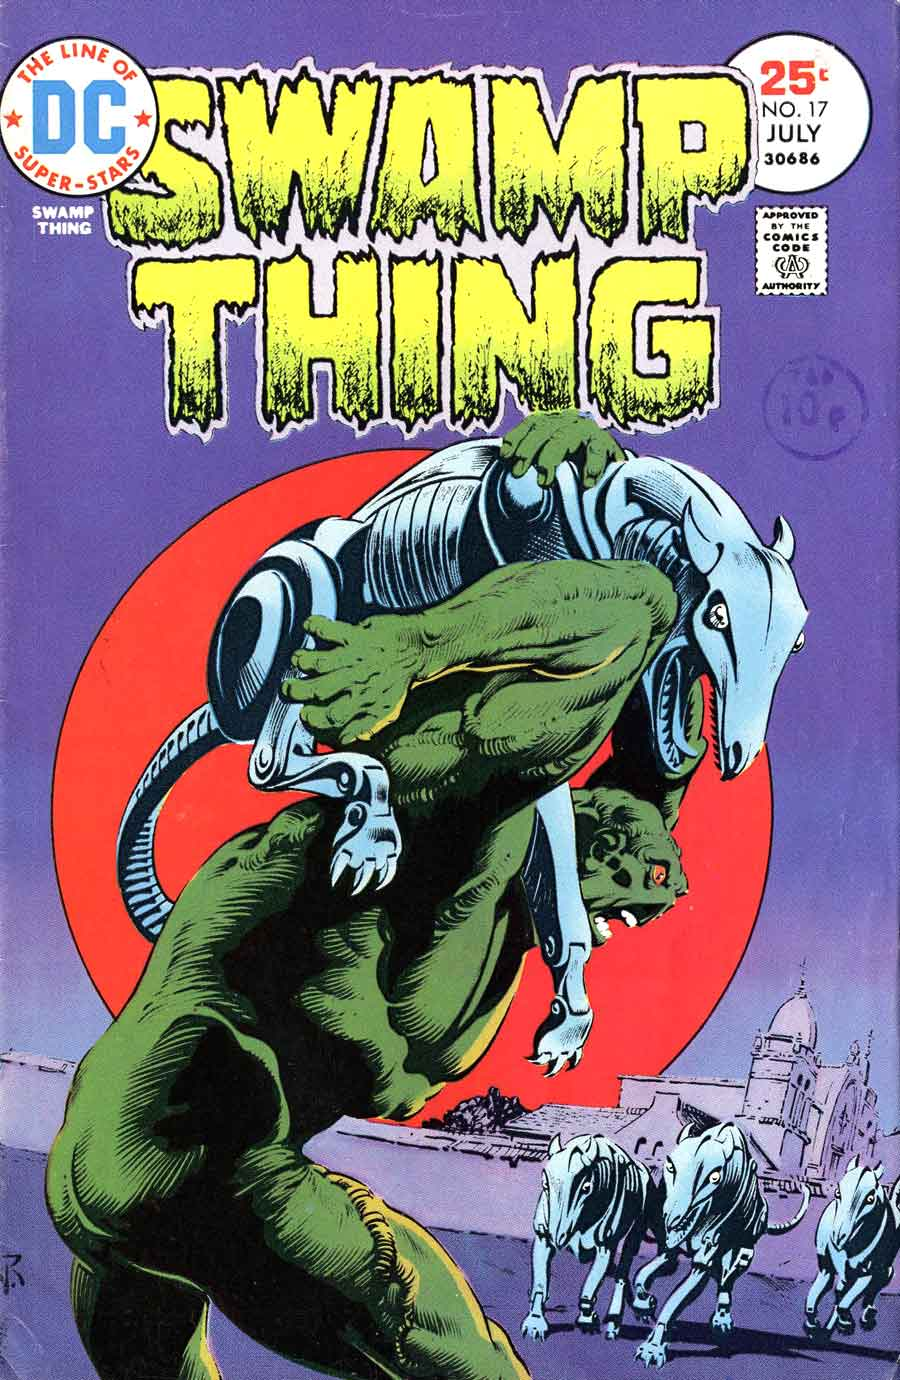 Swamp Thing v1 #17 1970s bronze age dc comic book cover art by Nestor Redondo